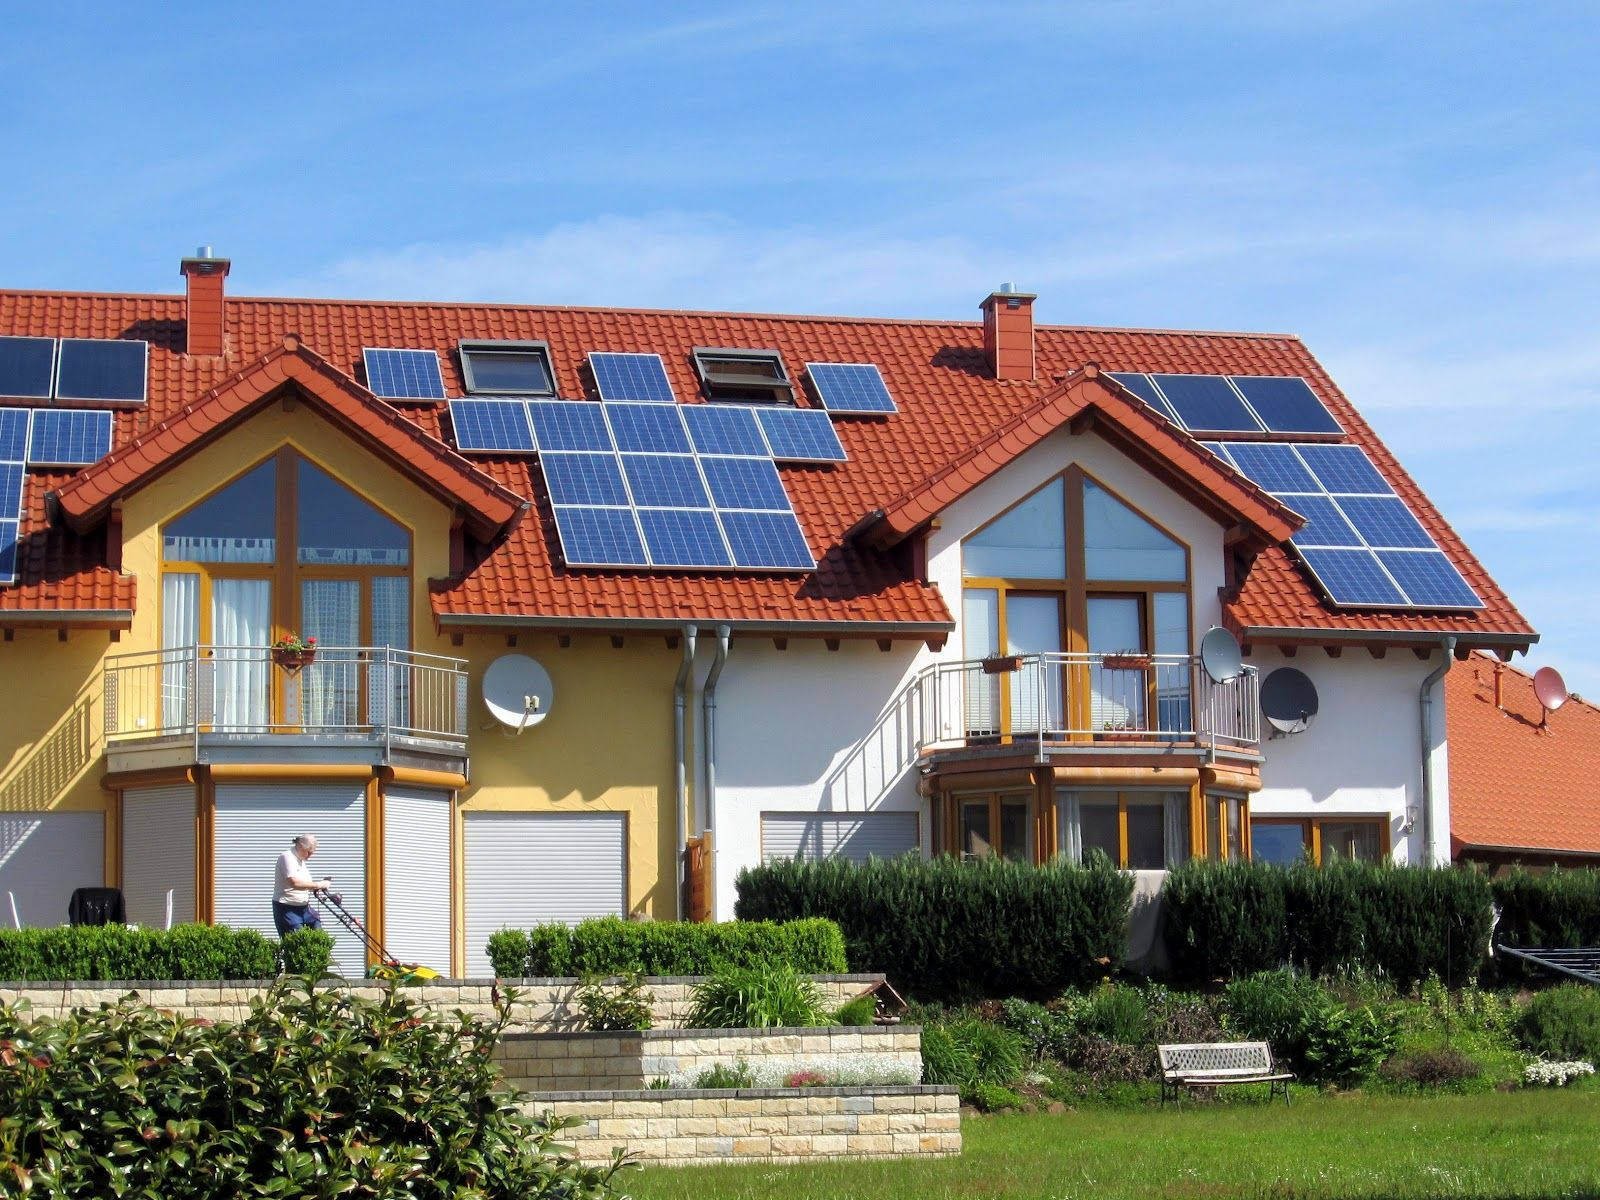 Best solar panels for house solar panels for house for Solar energy house designs